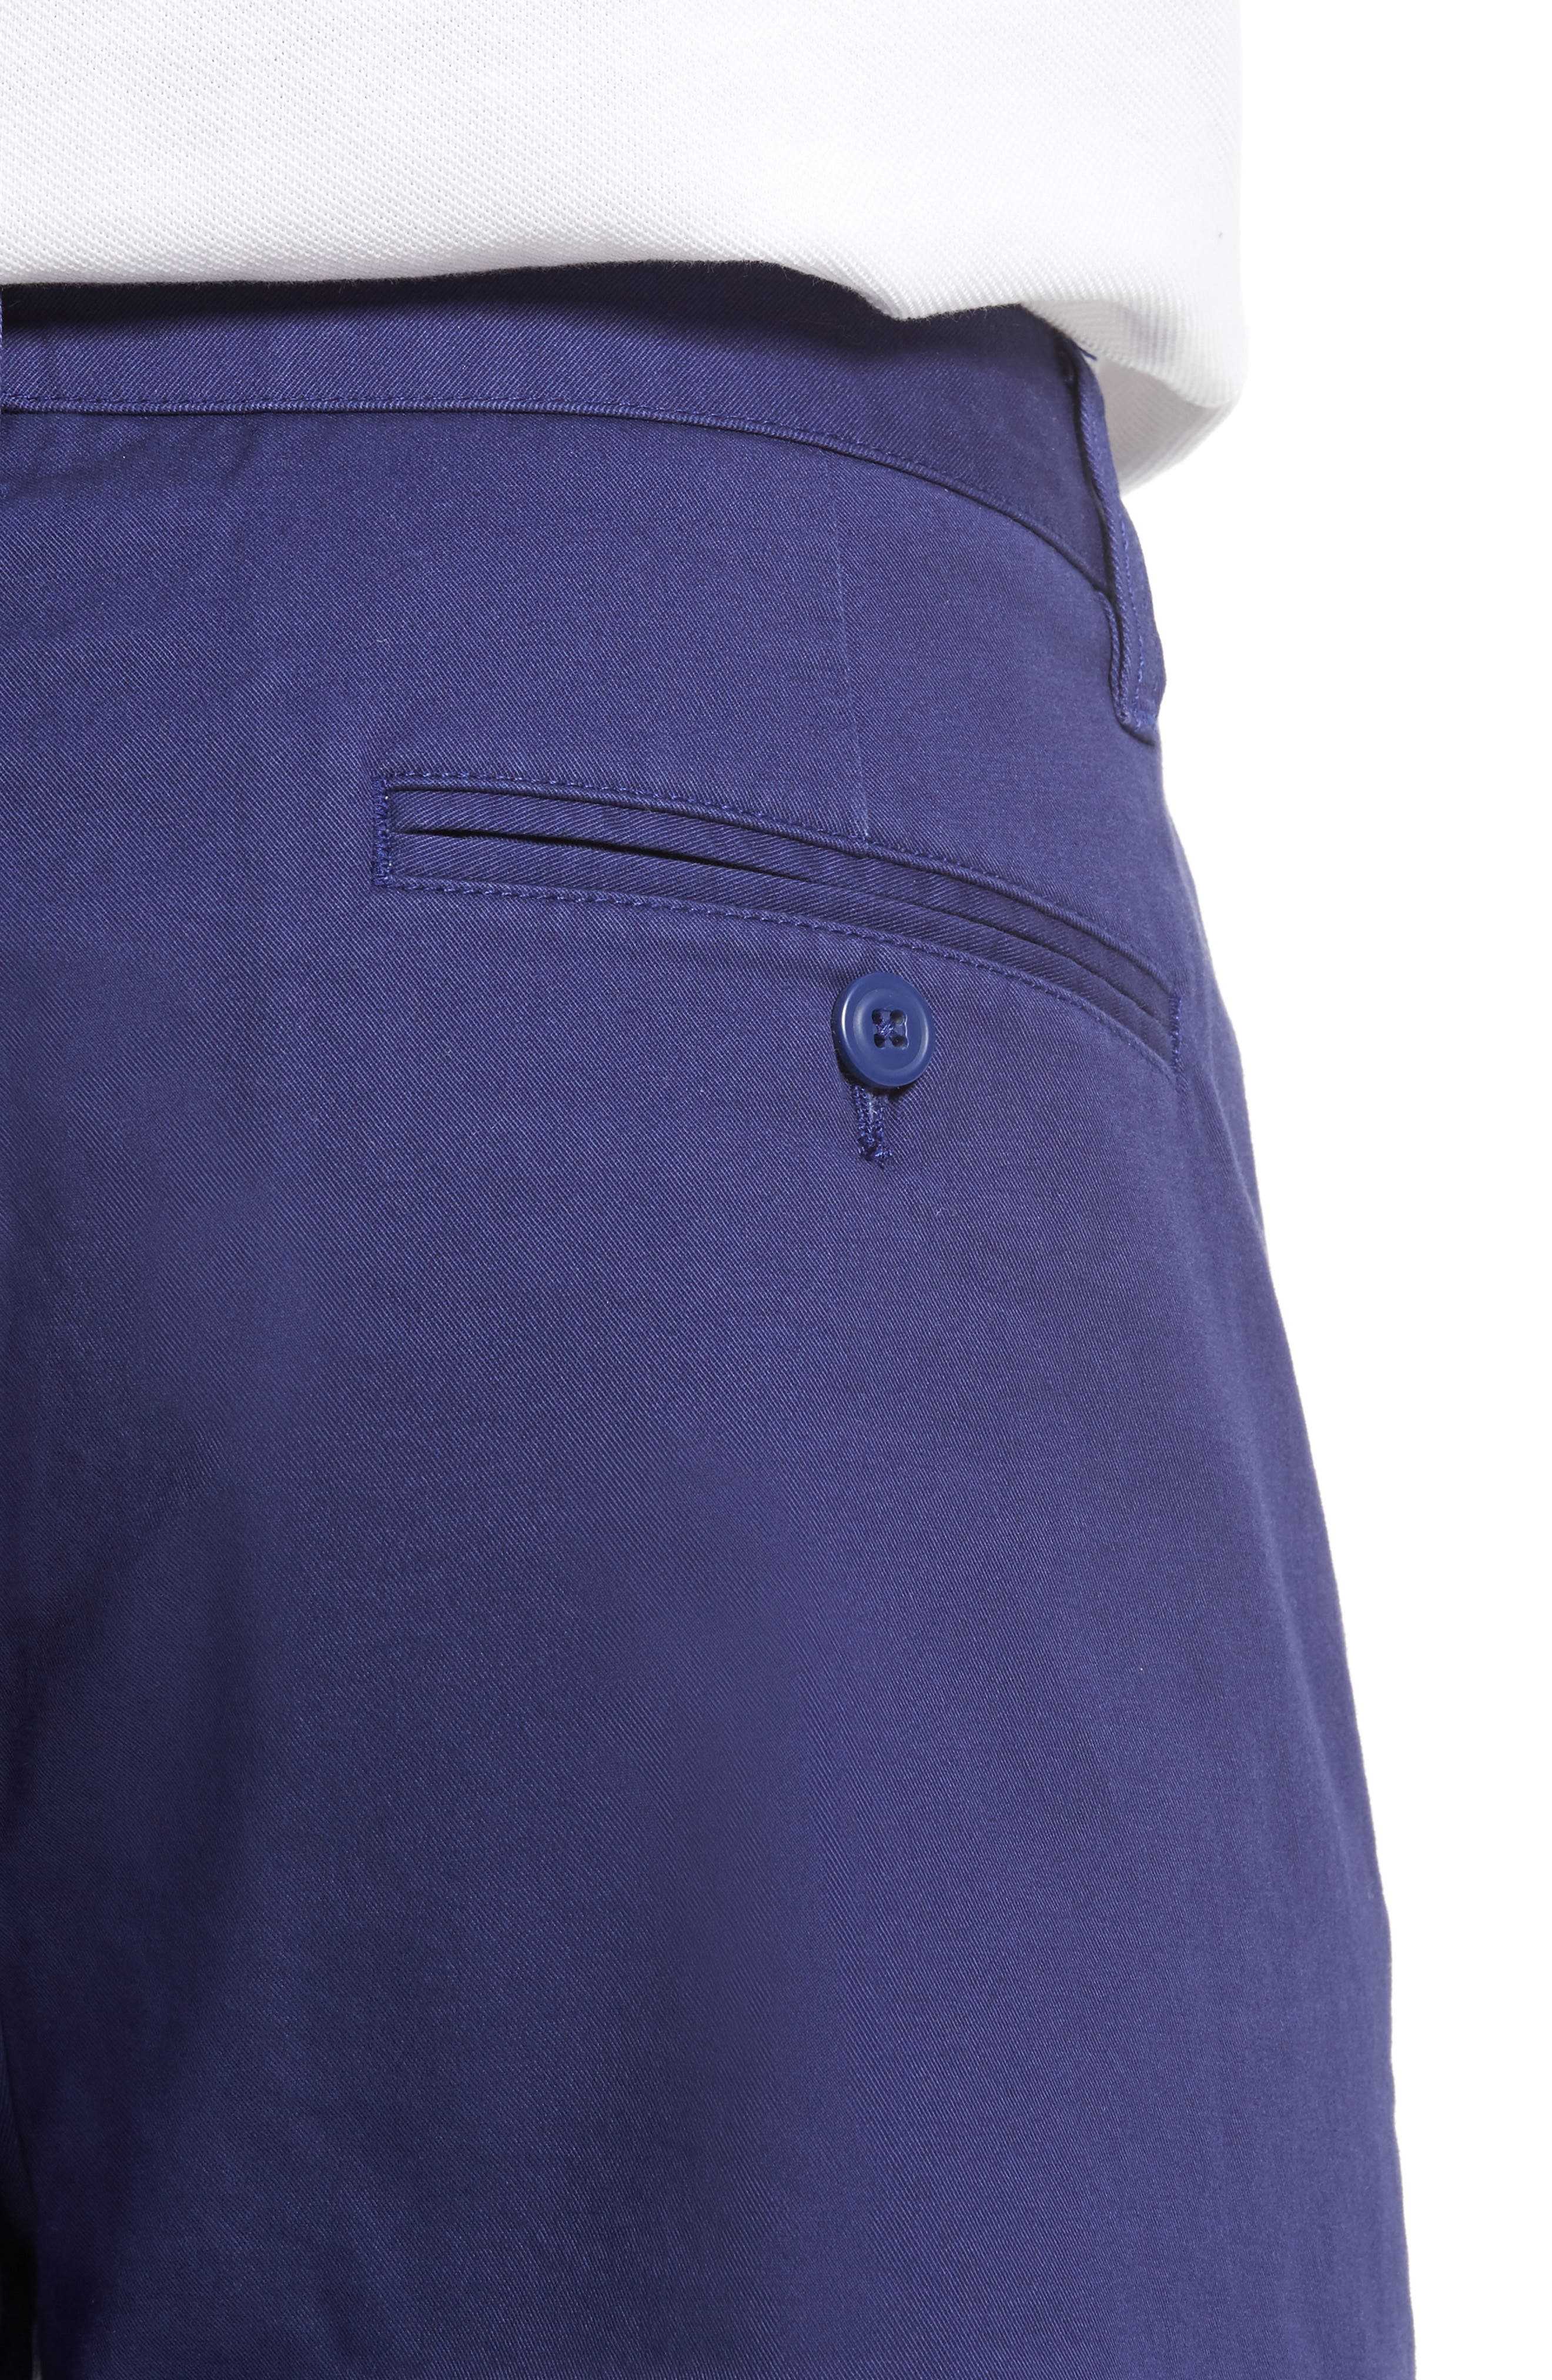 Stretch Chino 7-Inch Shorts,                             Alternate thumbnail 50, color,